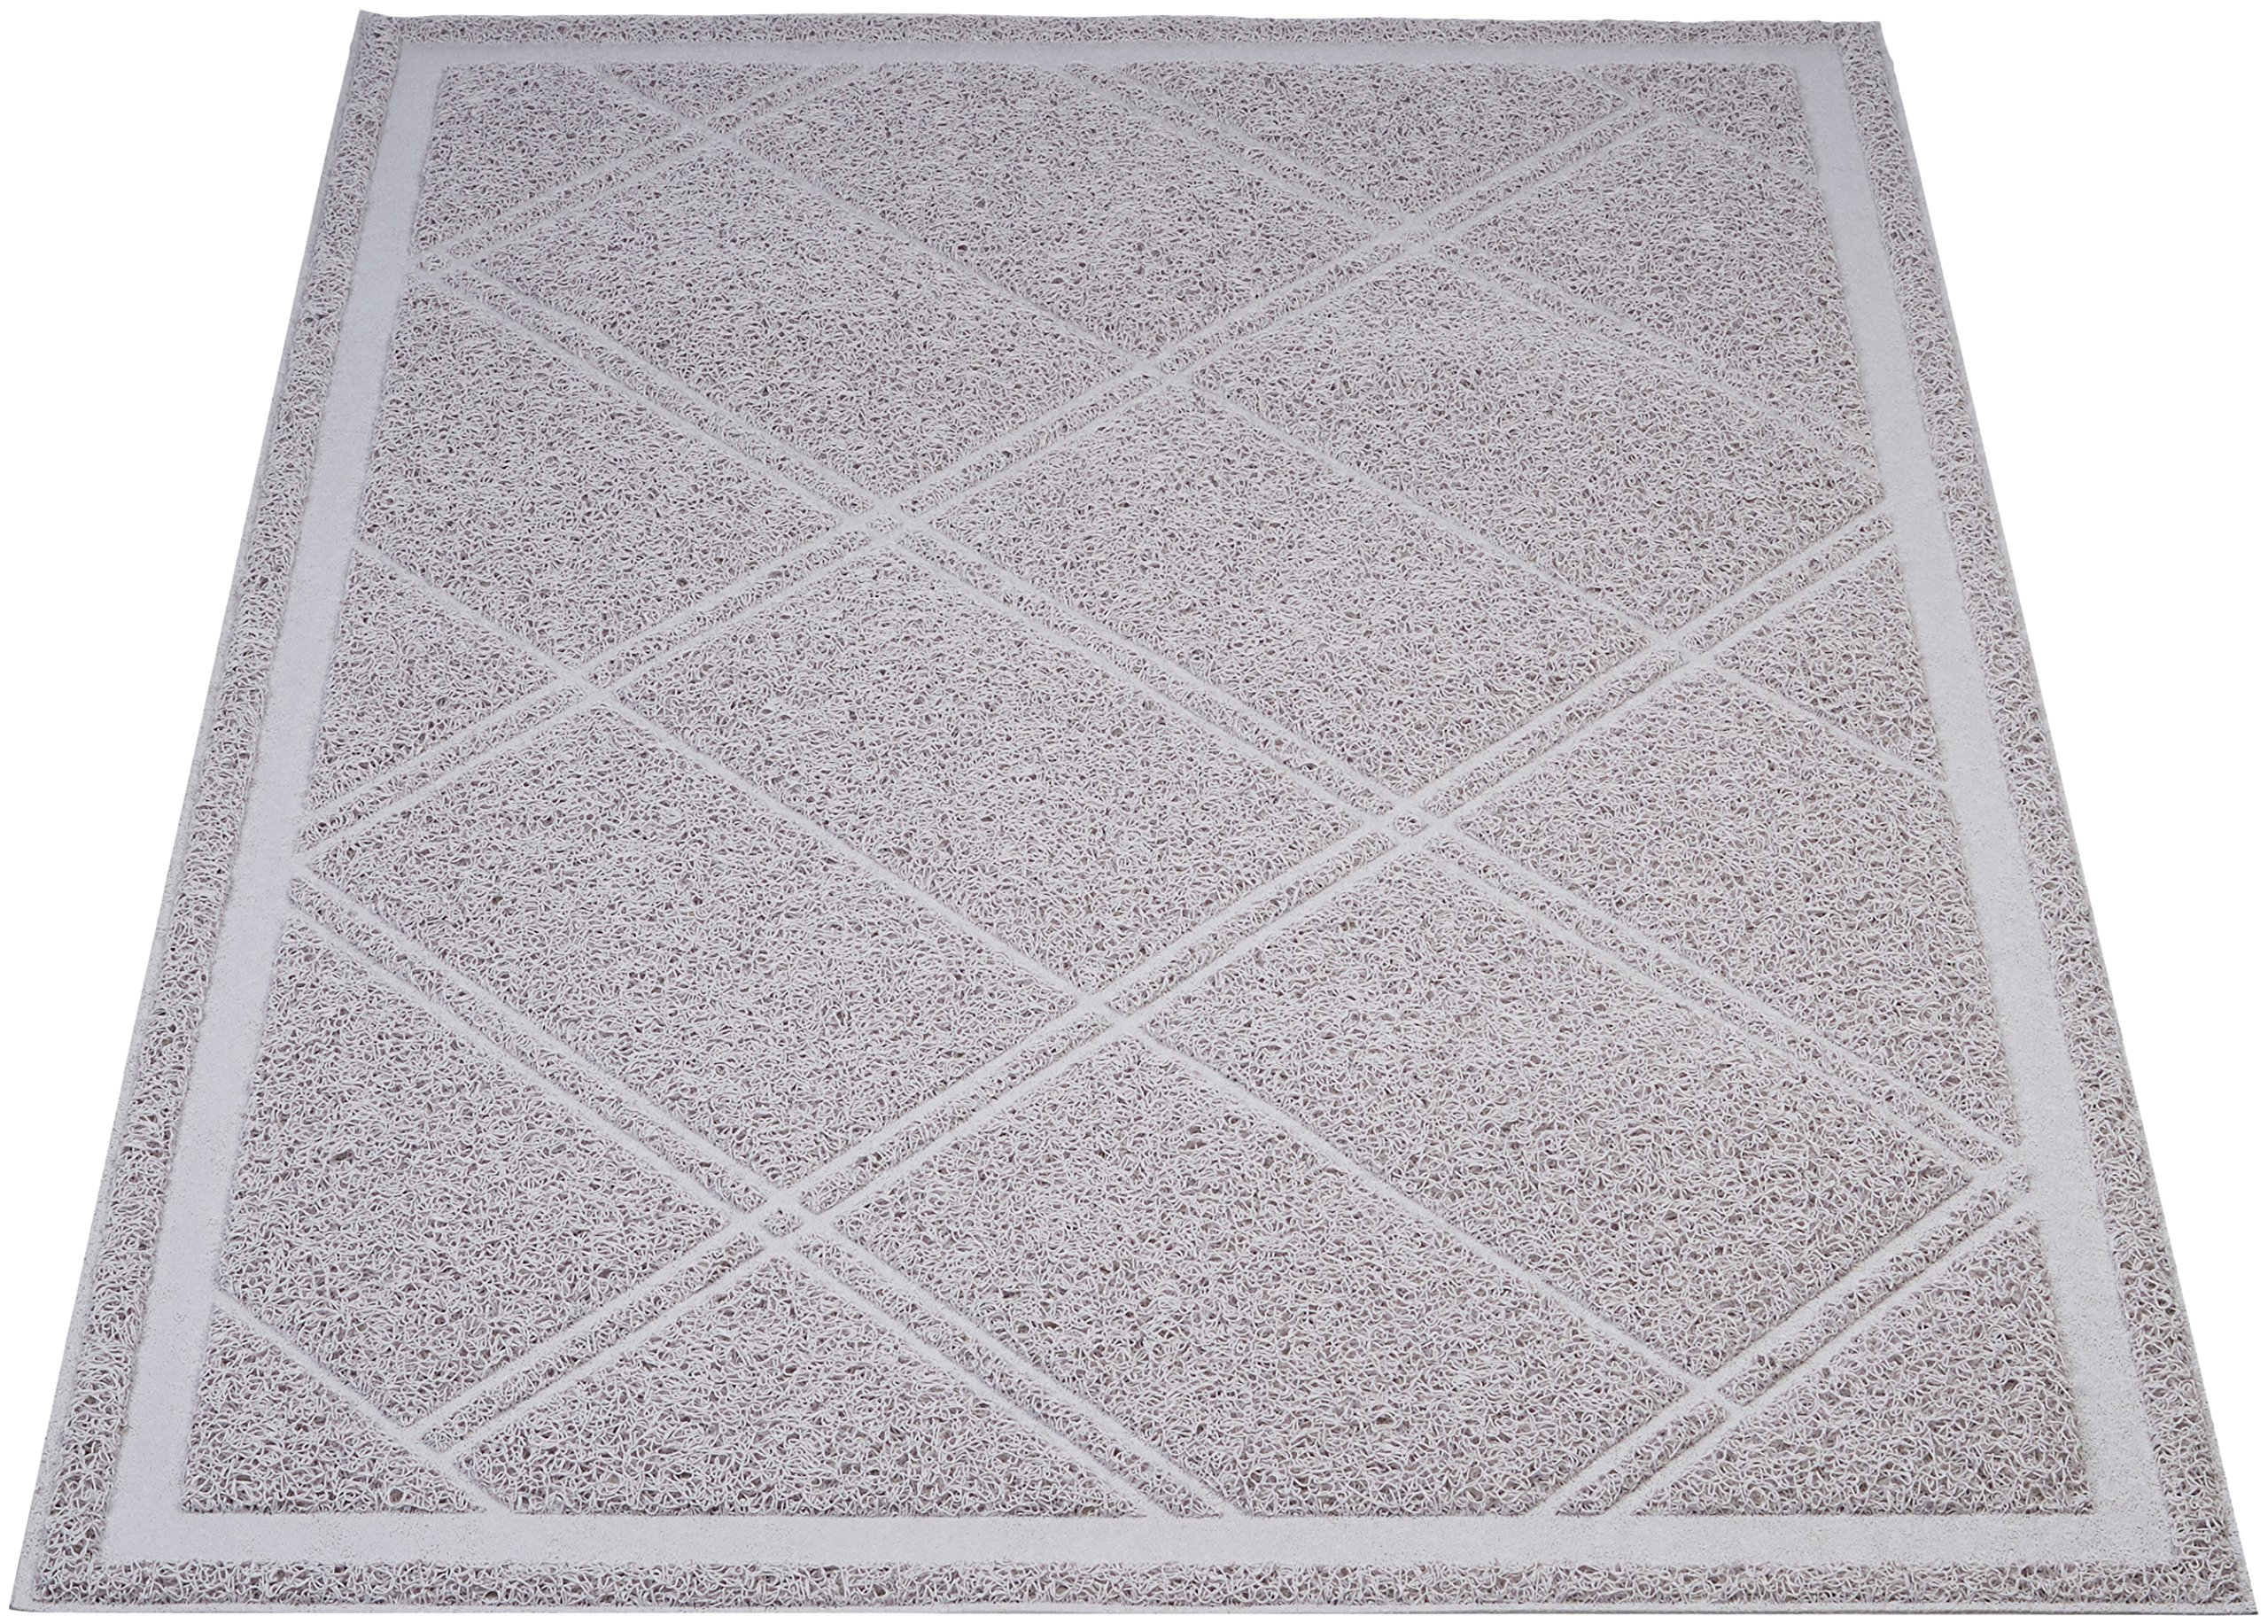 Amazon Basics Less-Mess Cat Litter Box Mat